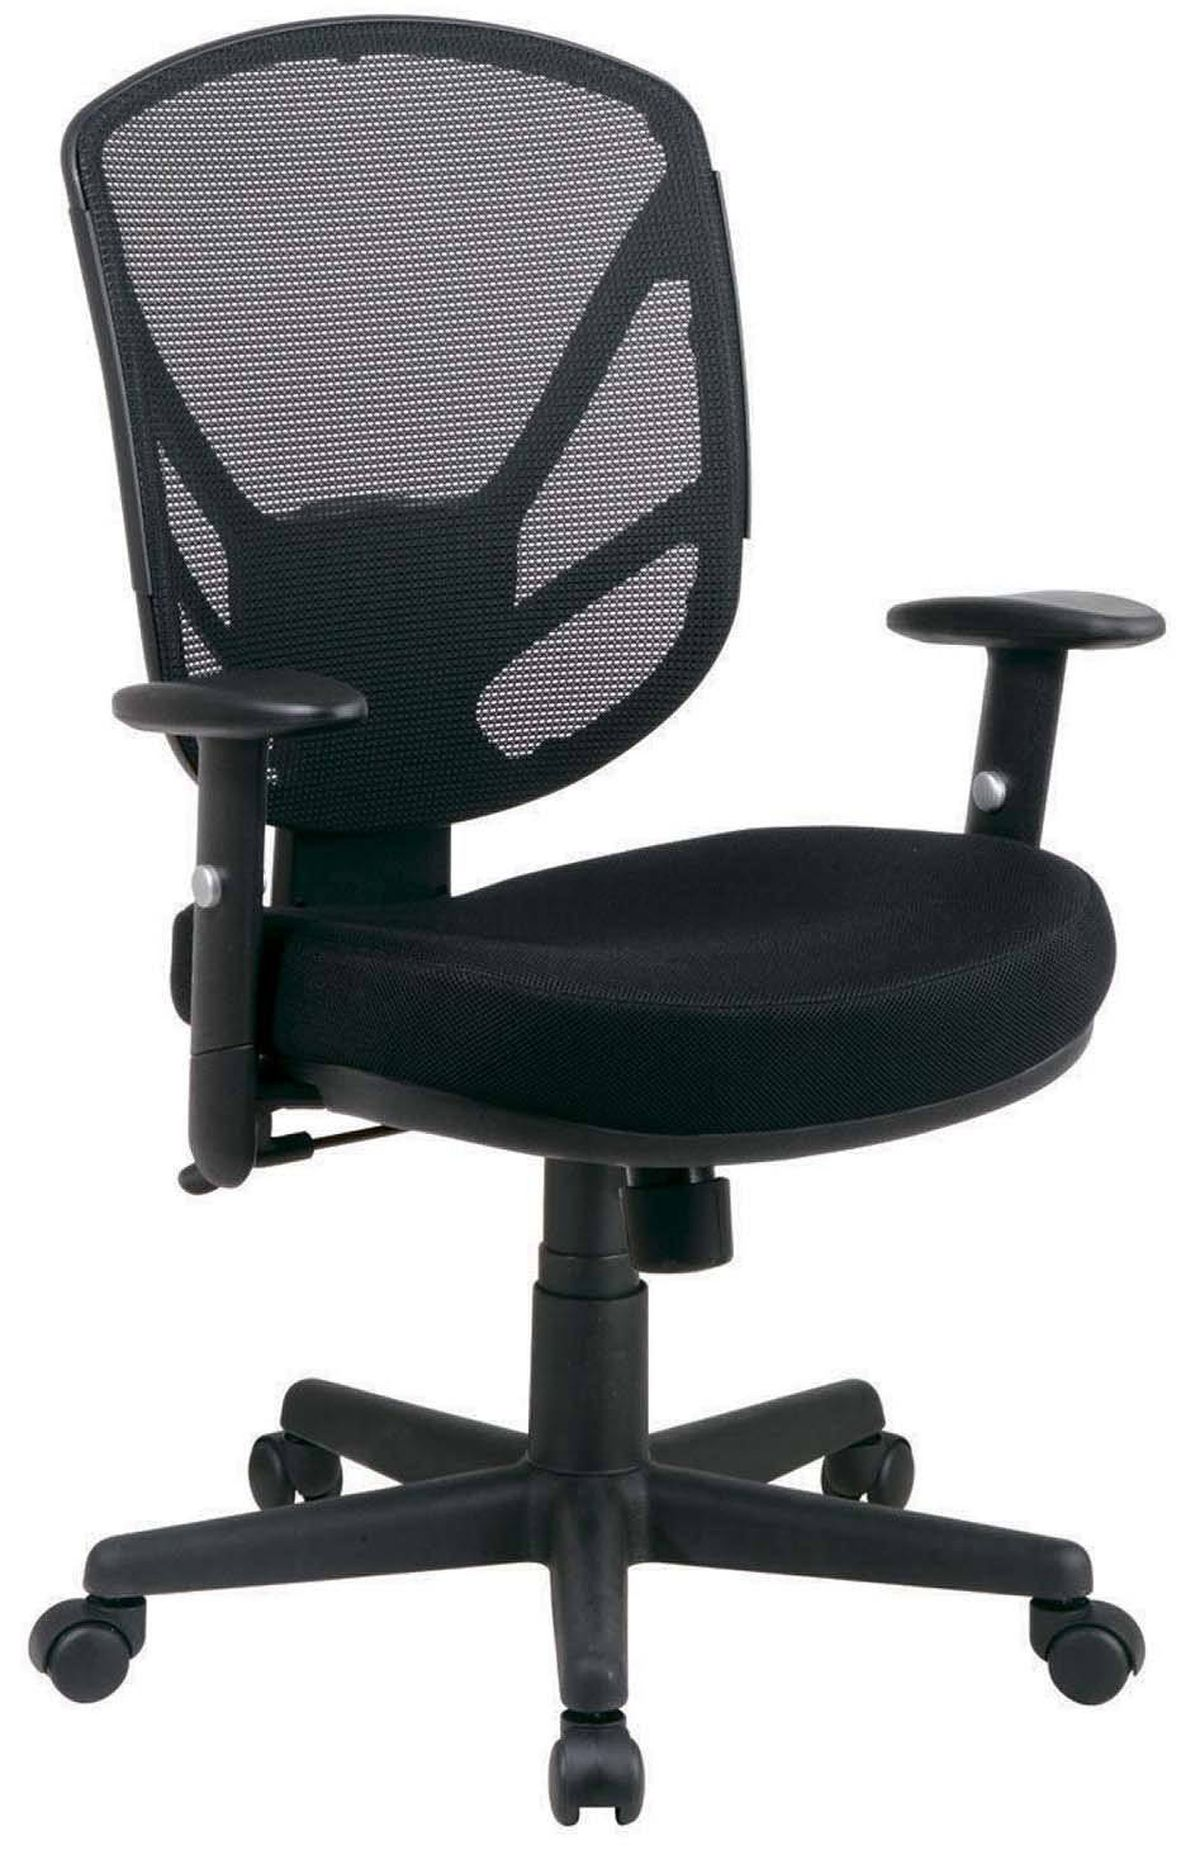 Staples' Mesh Task Chair offers adjustable seat and arm rests, centre tilt movement and tilt-lock and -tension control at an affordable price. $139.99 at Staples stores across Canada.